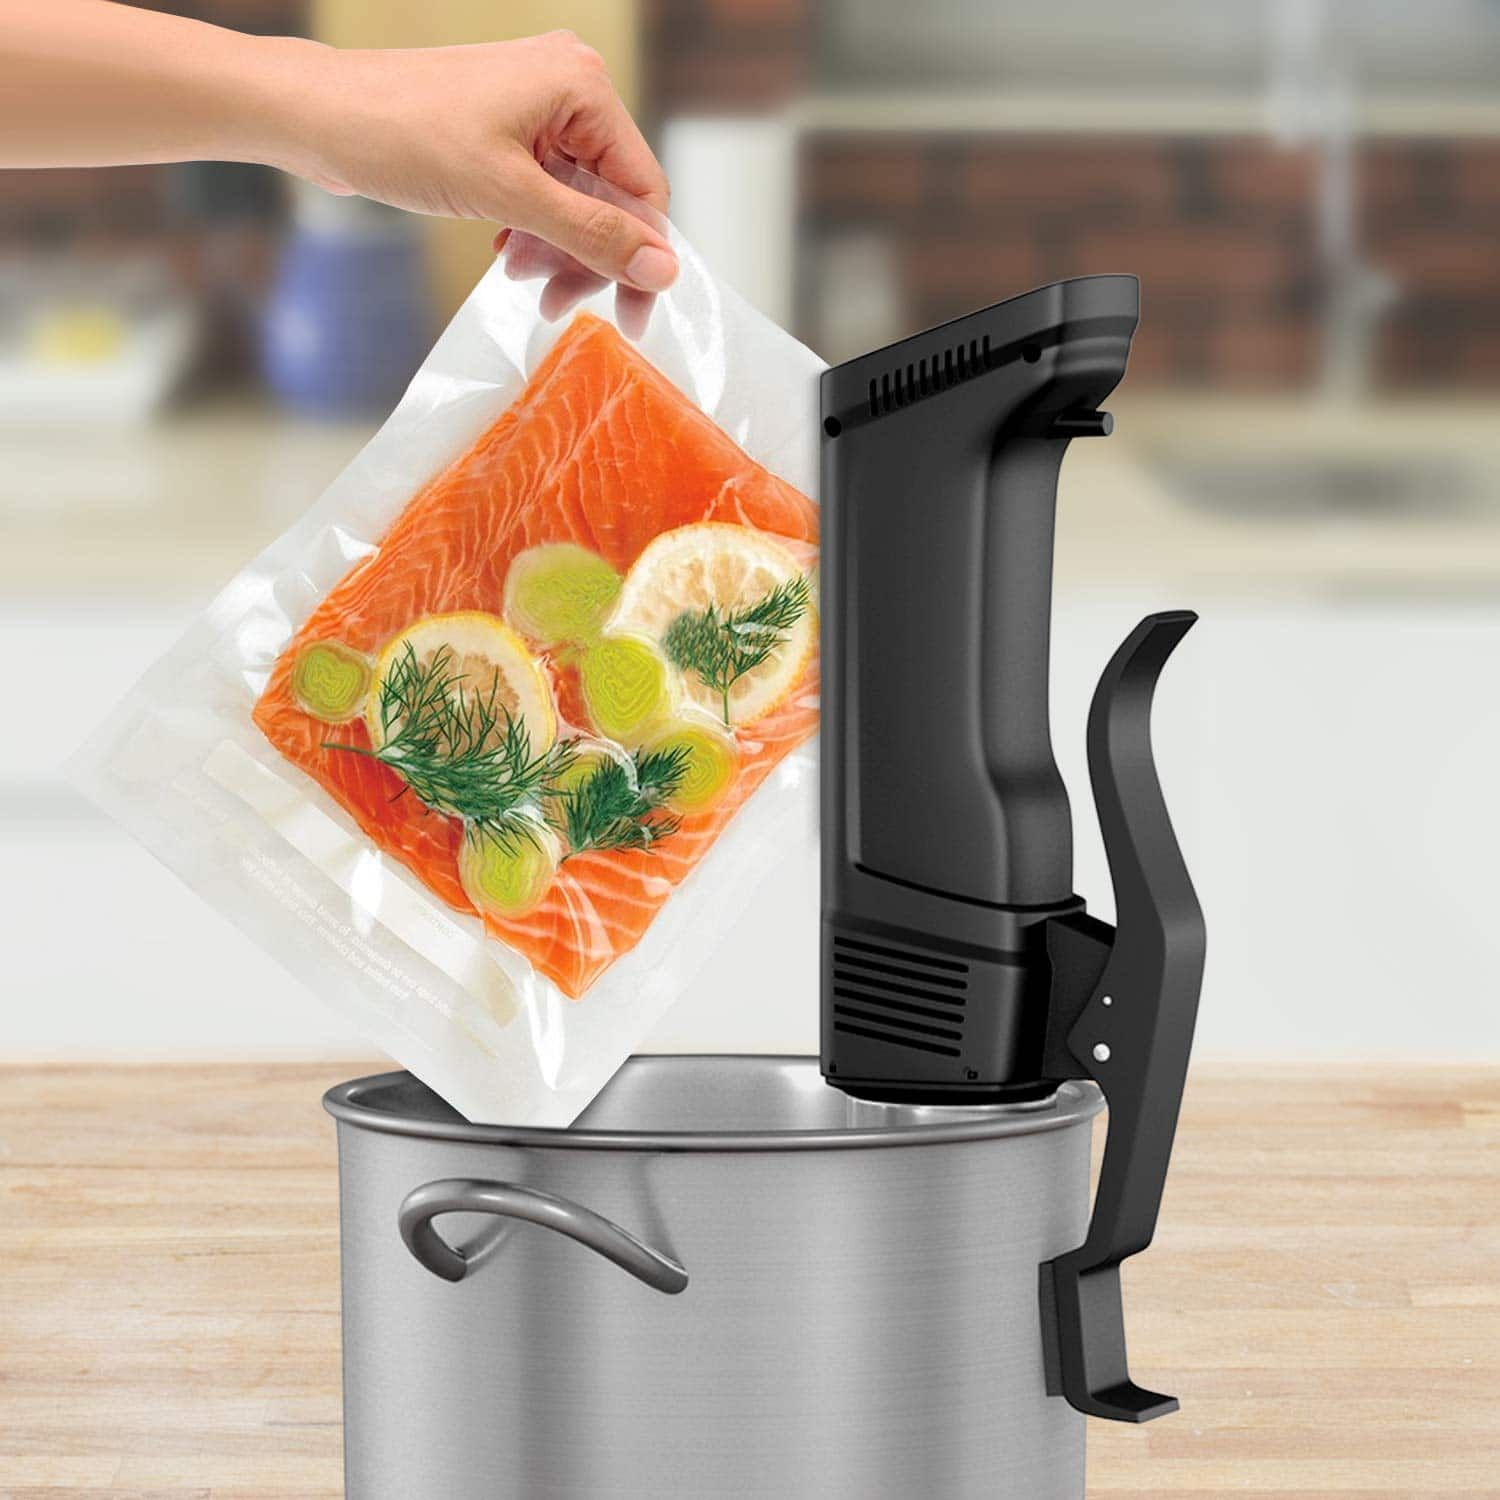 Inkbird Wifi Sous Vide Cooker Review With Images Sous Vide